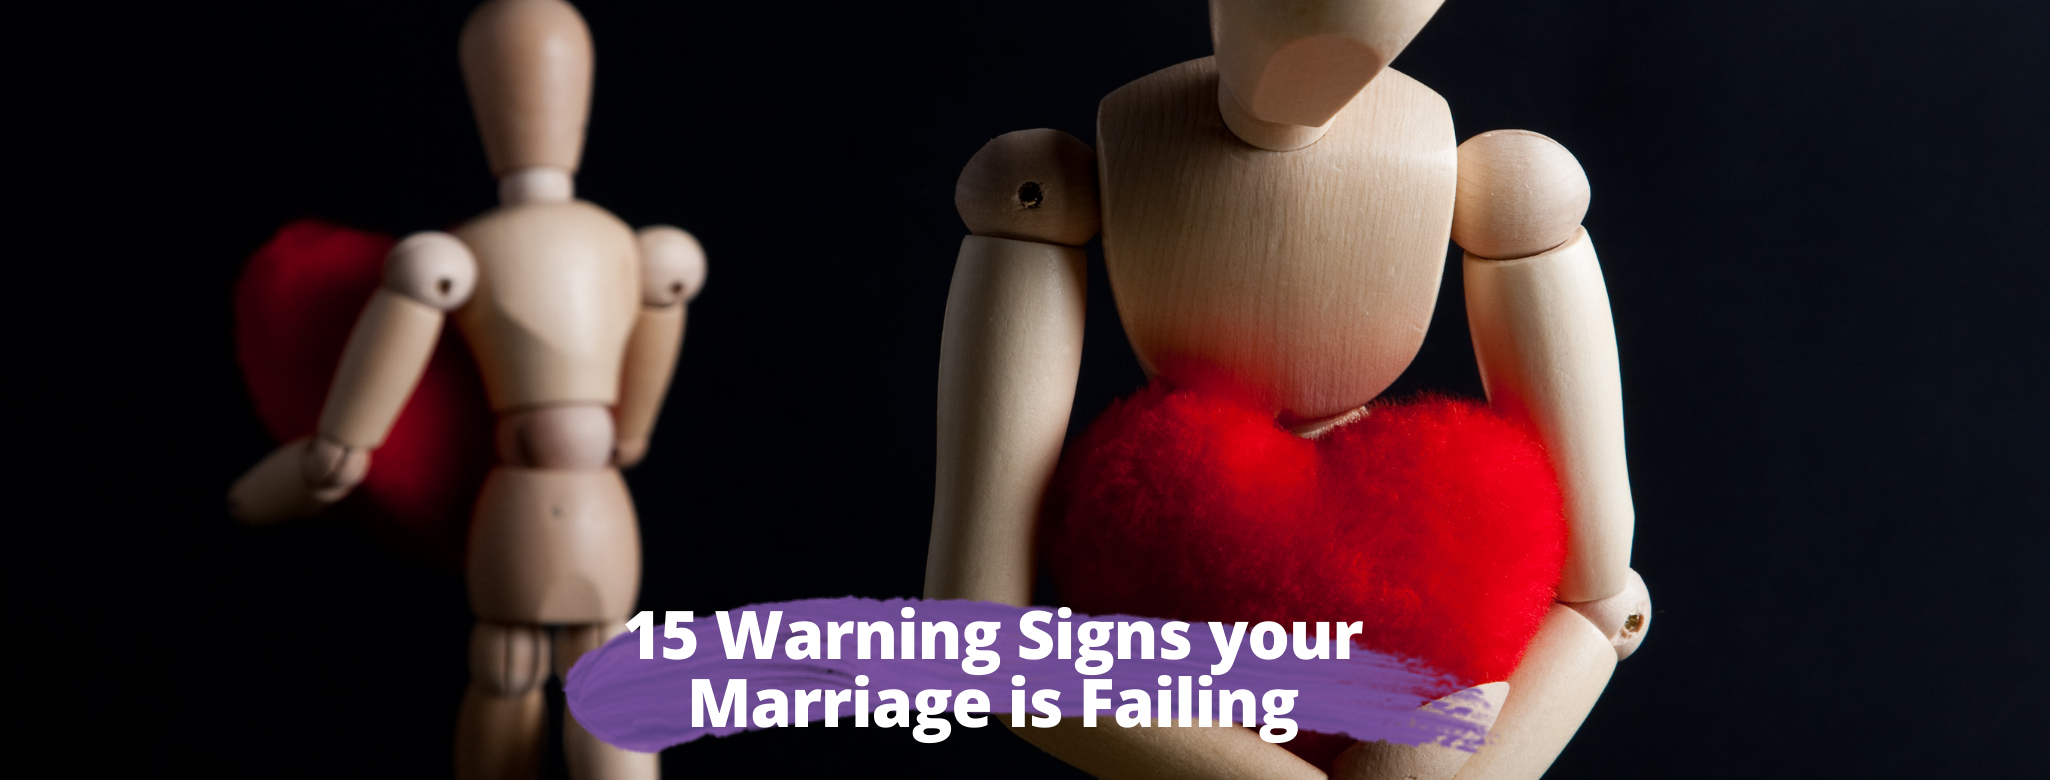 15 Warning Signs your Marriage is Failing